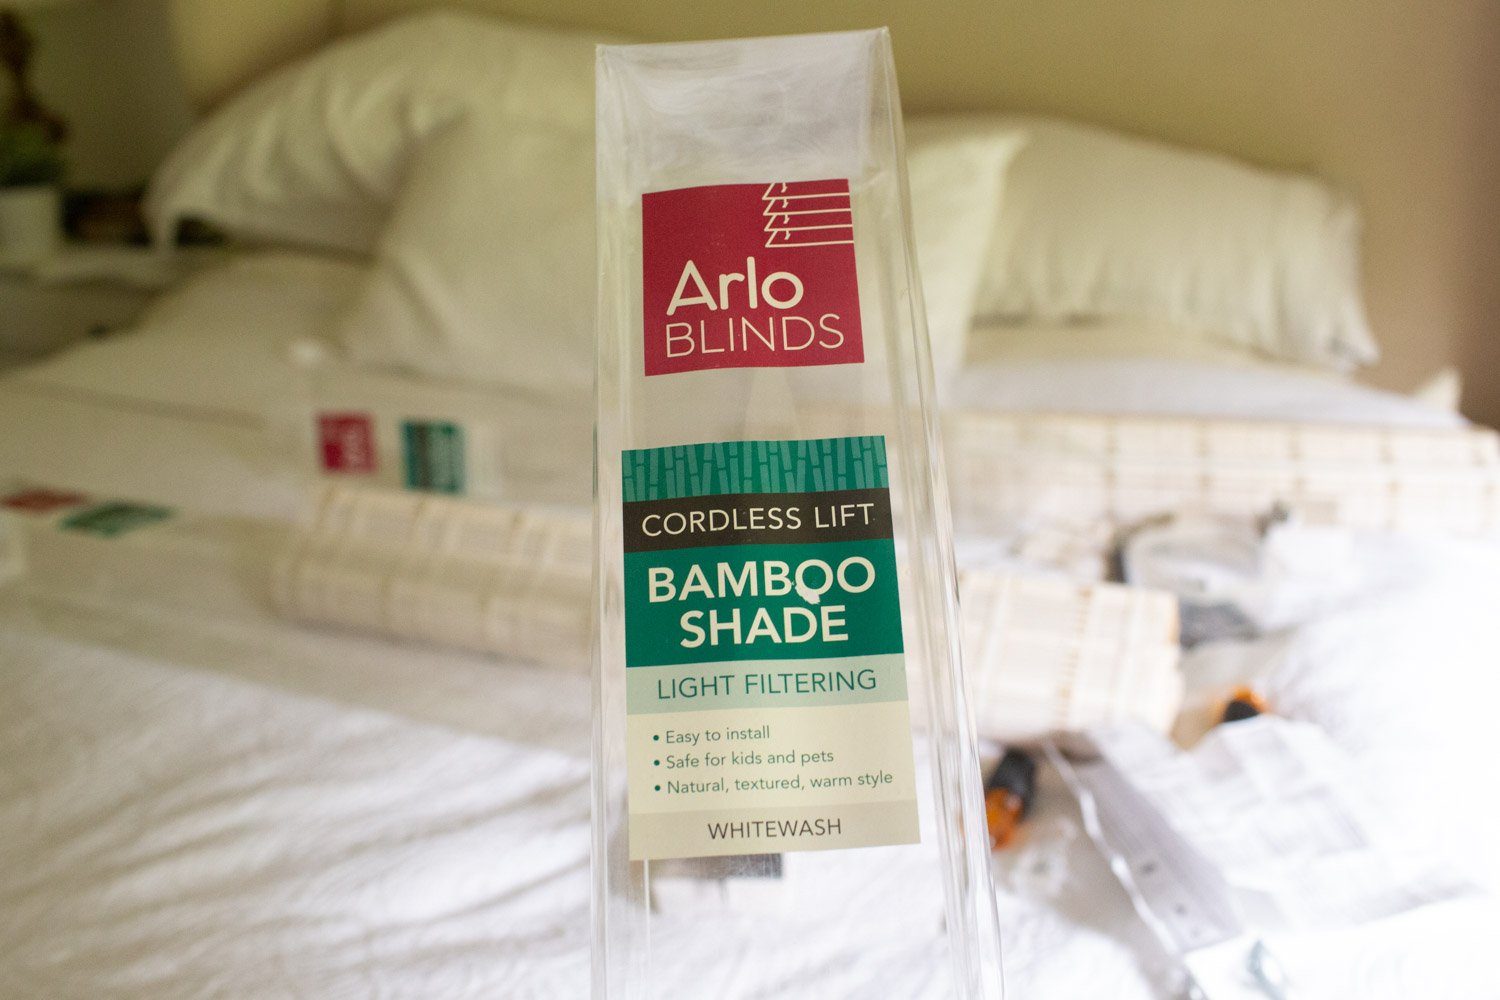 affordable whitewash bamboo natural shades - roman shades inexpensive from amazon